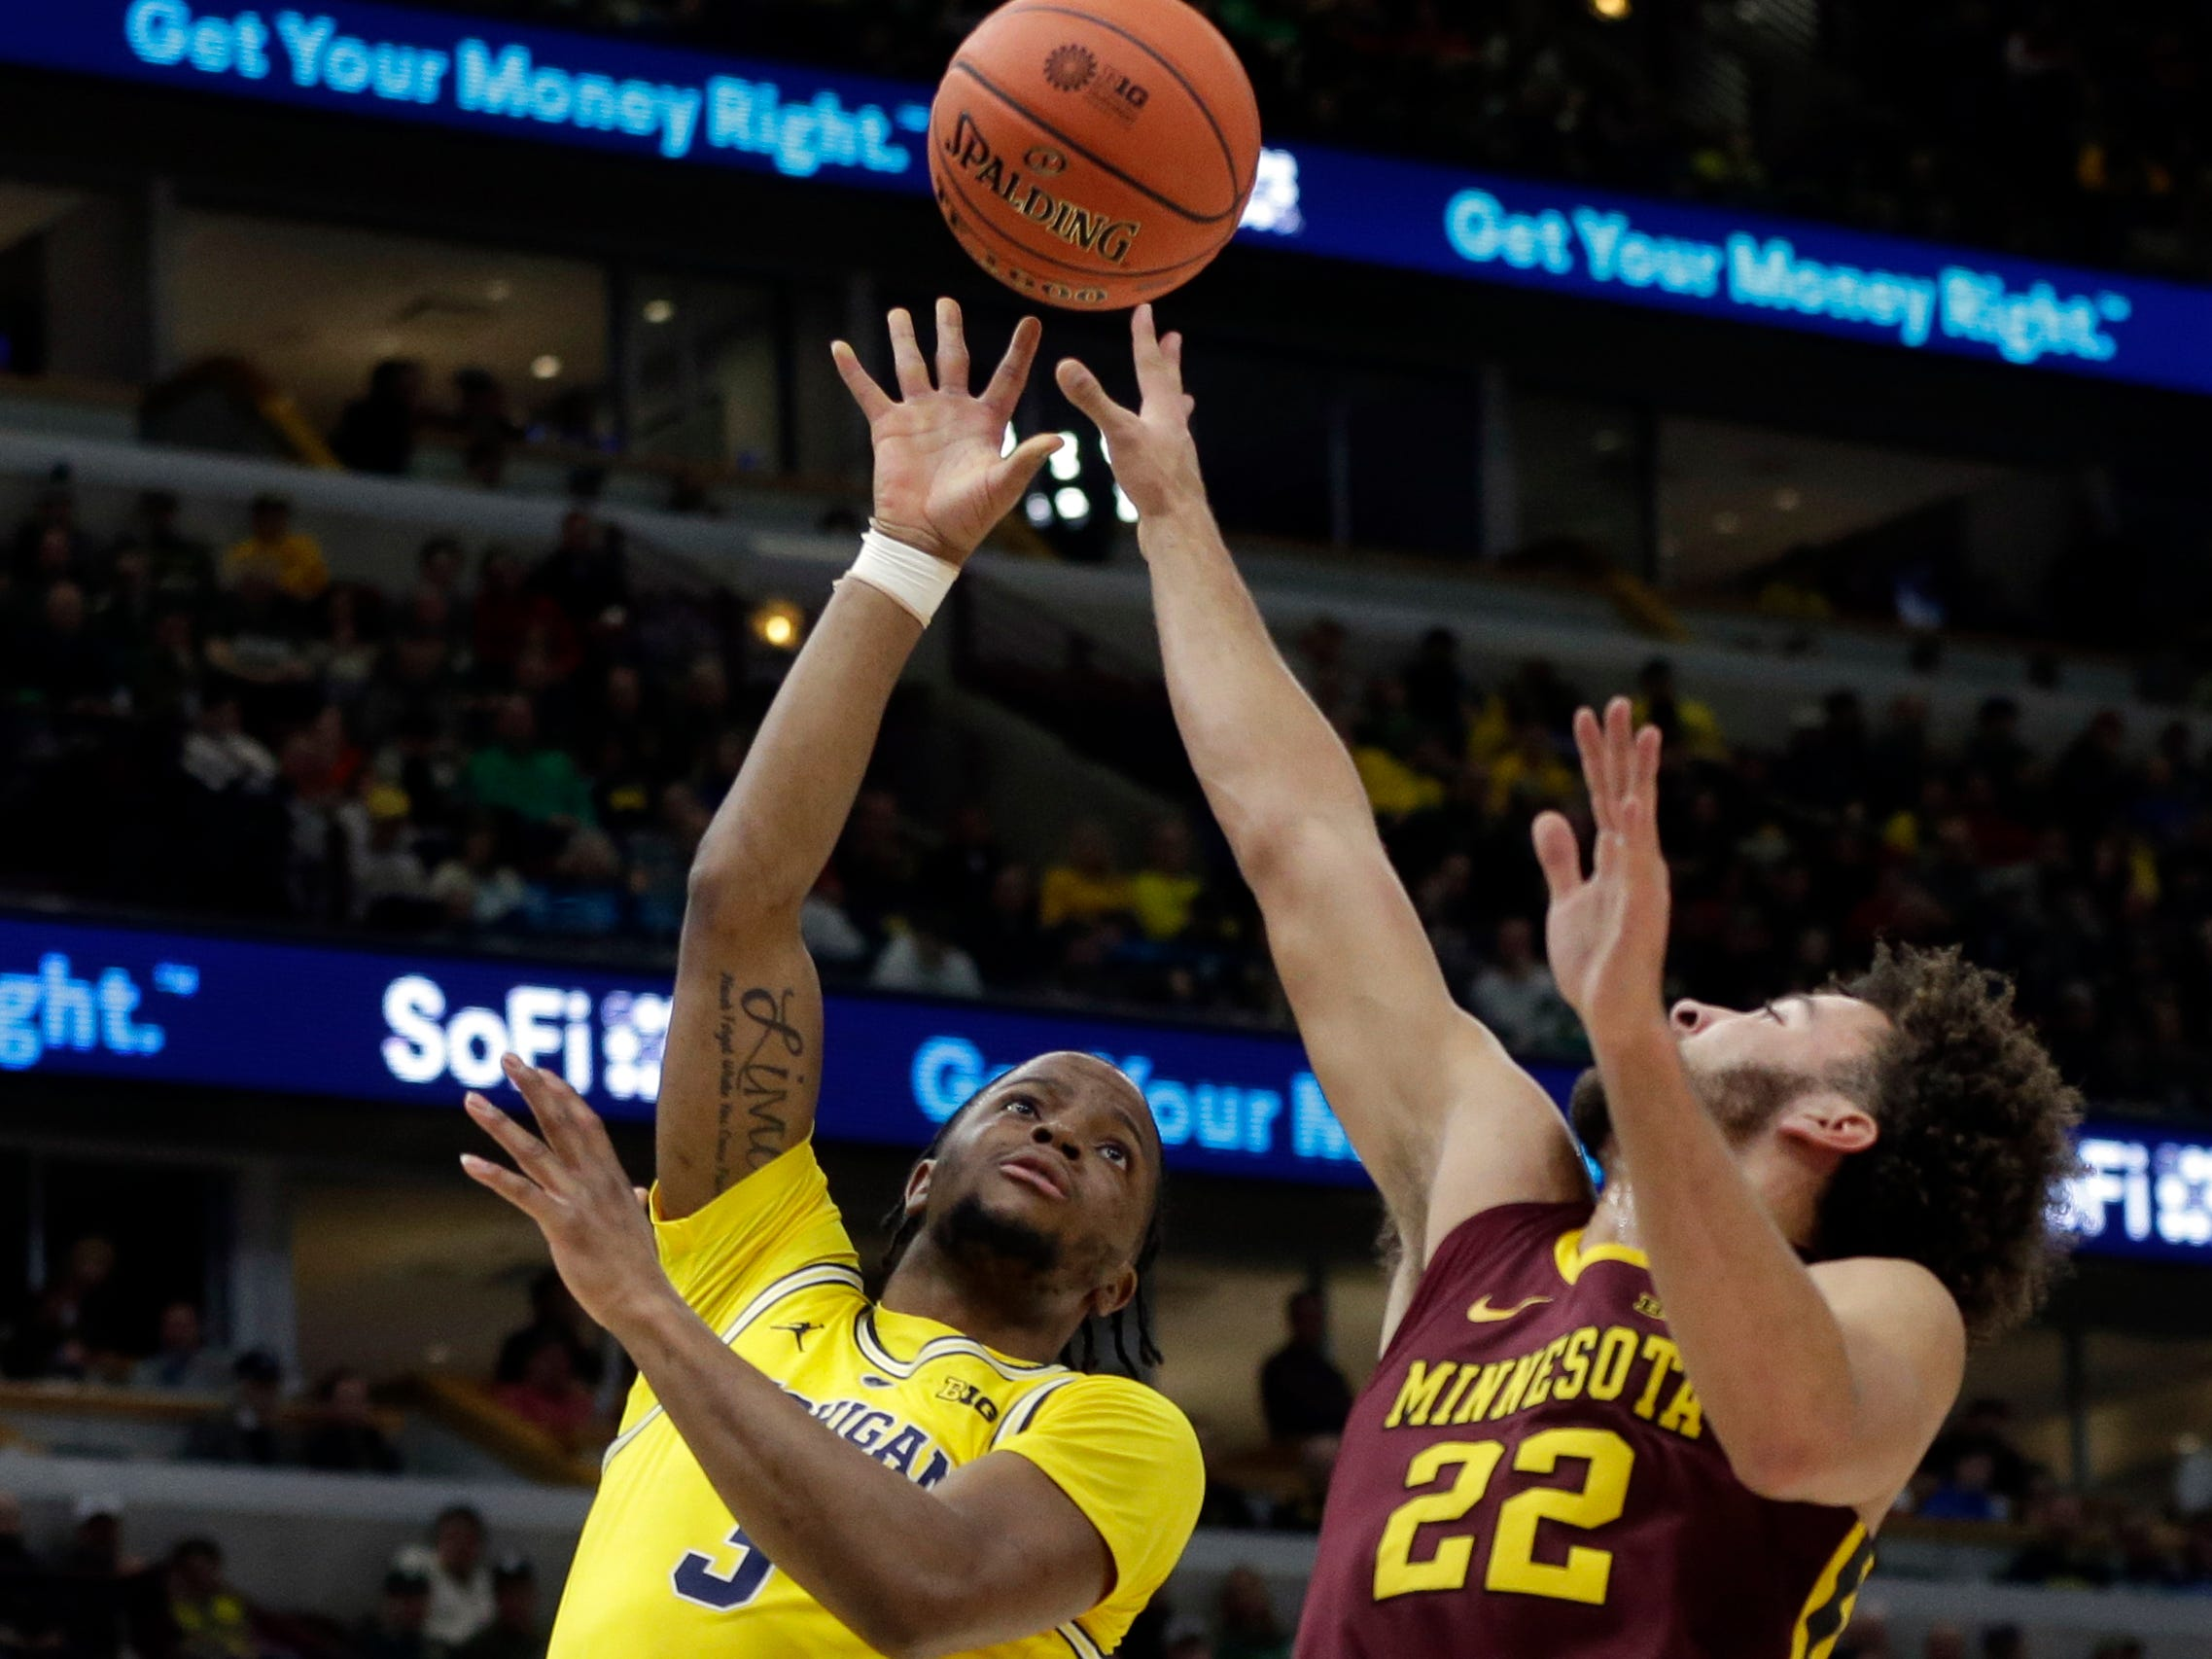 Michigan's Zavier Simpson takes a shot over Minnesota's Gabe Kalscheur during the first half.